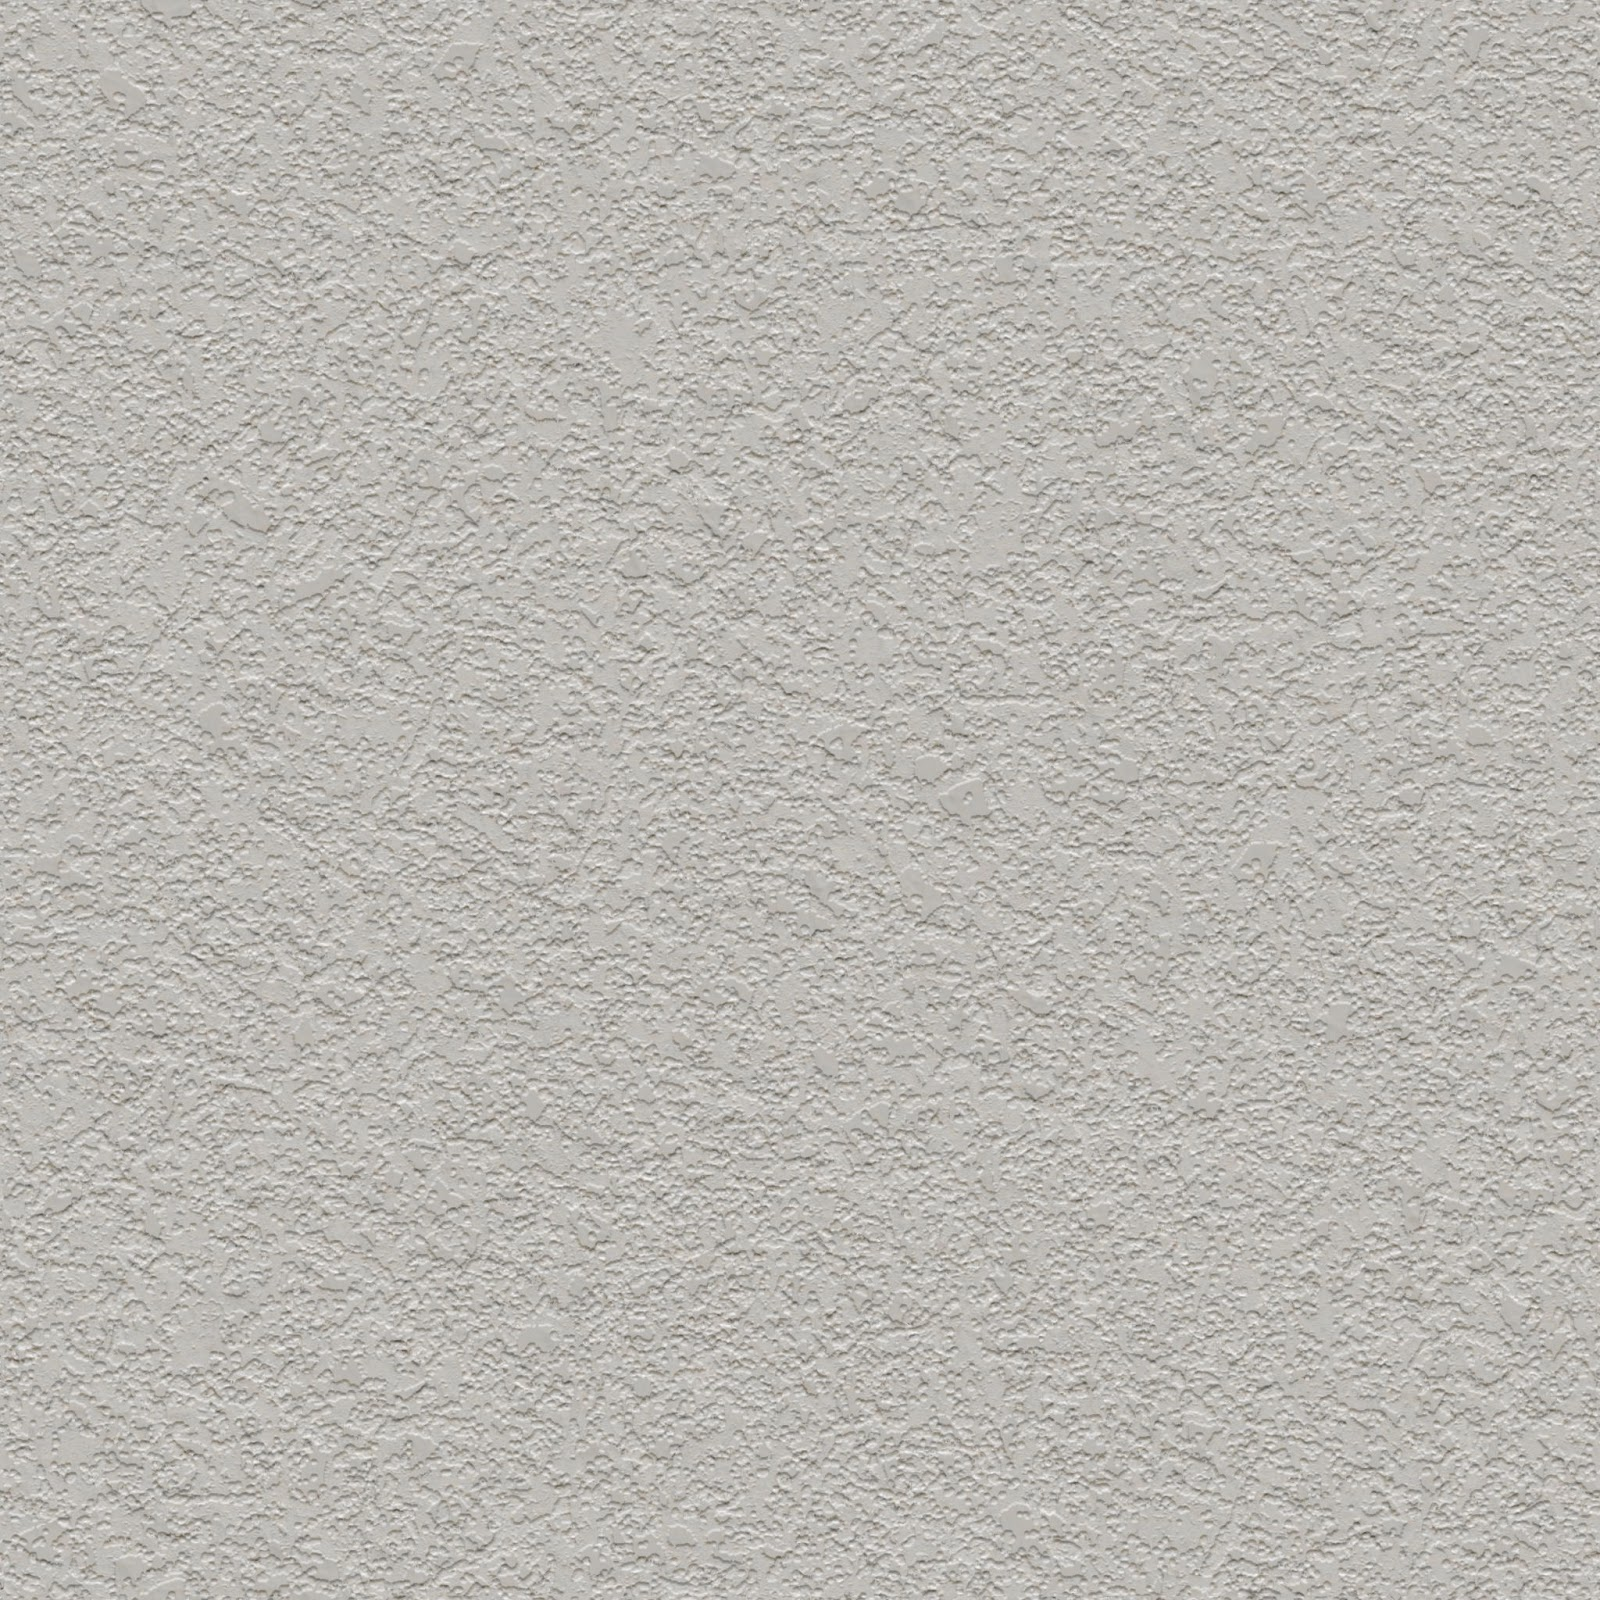 HIGH RESOLUTION SEAMLESS TEXTURES: Smooth_stucco_white